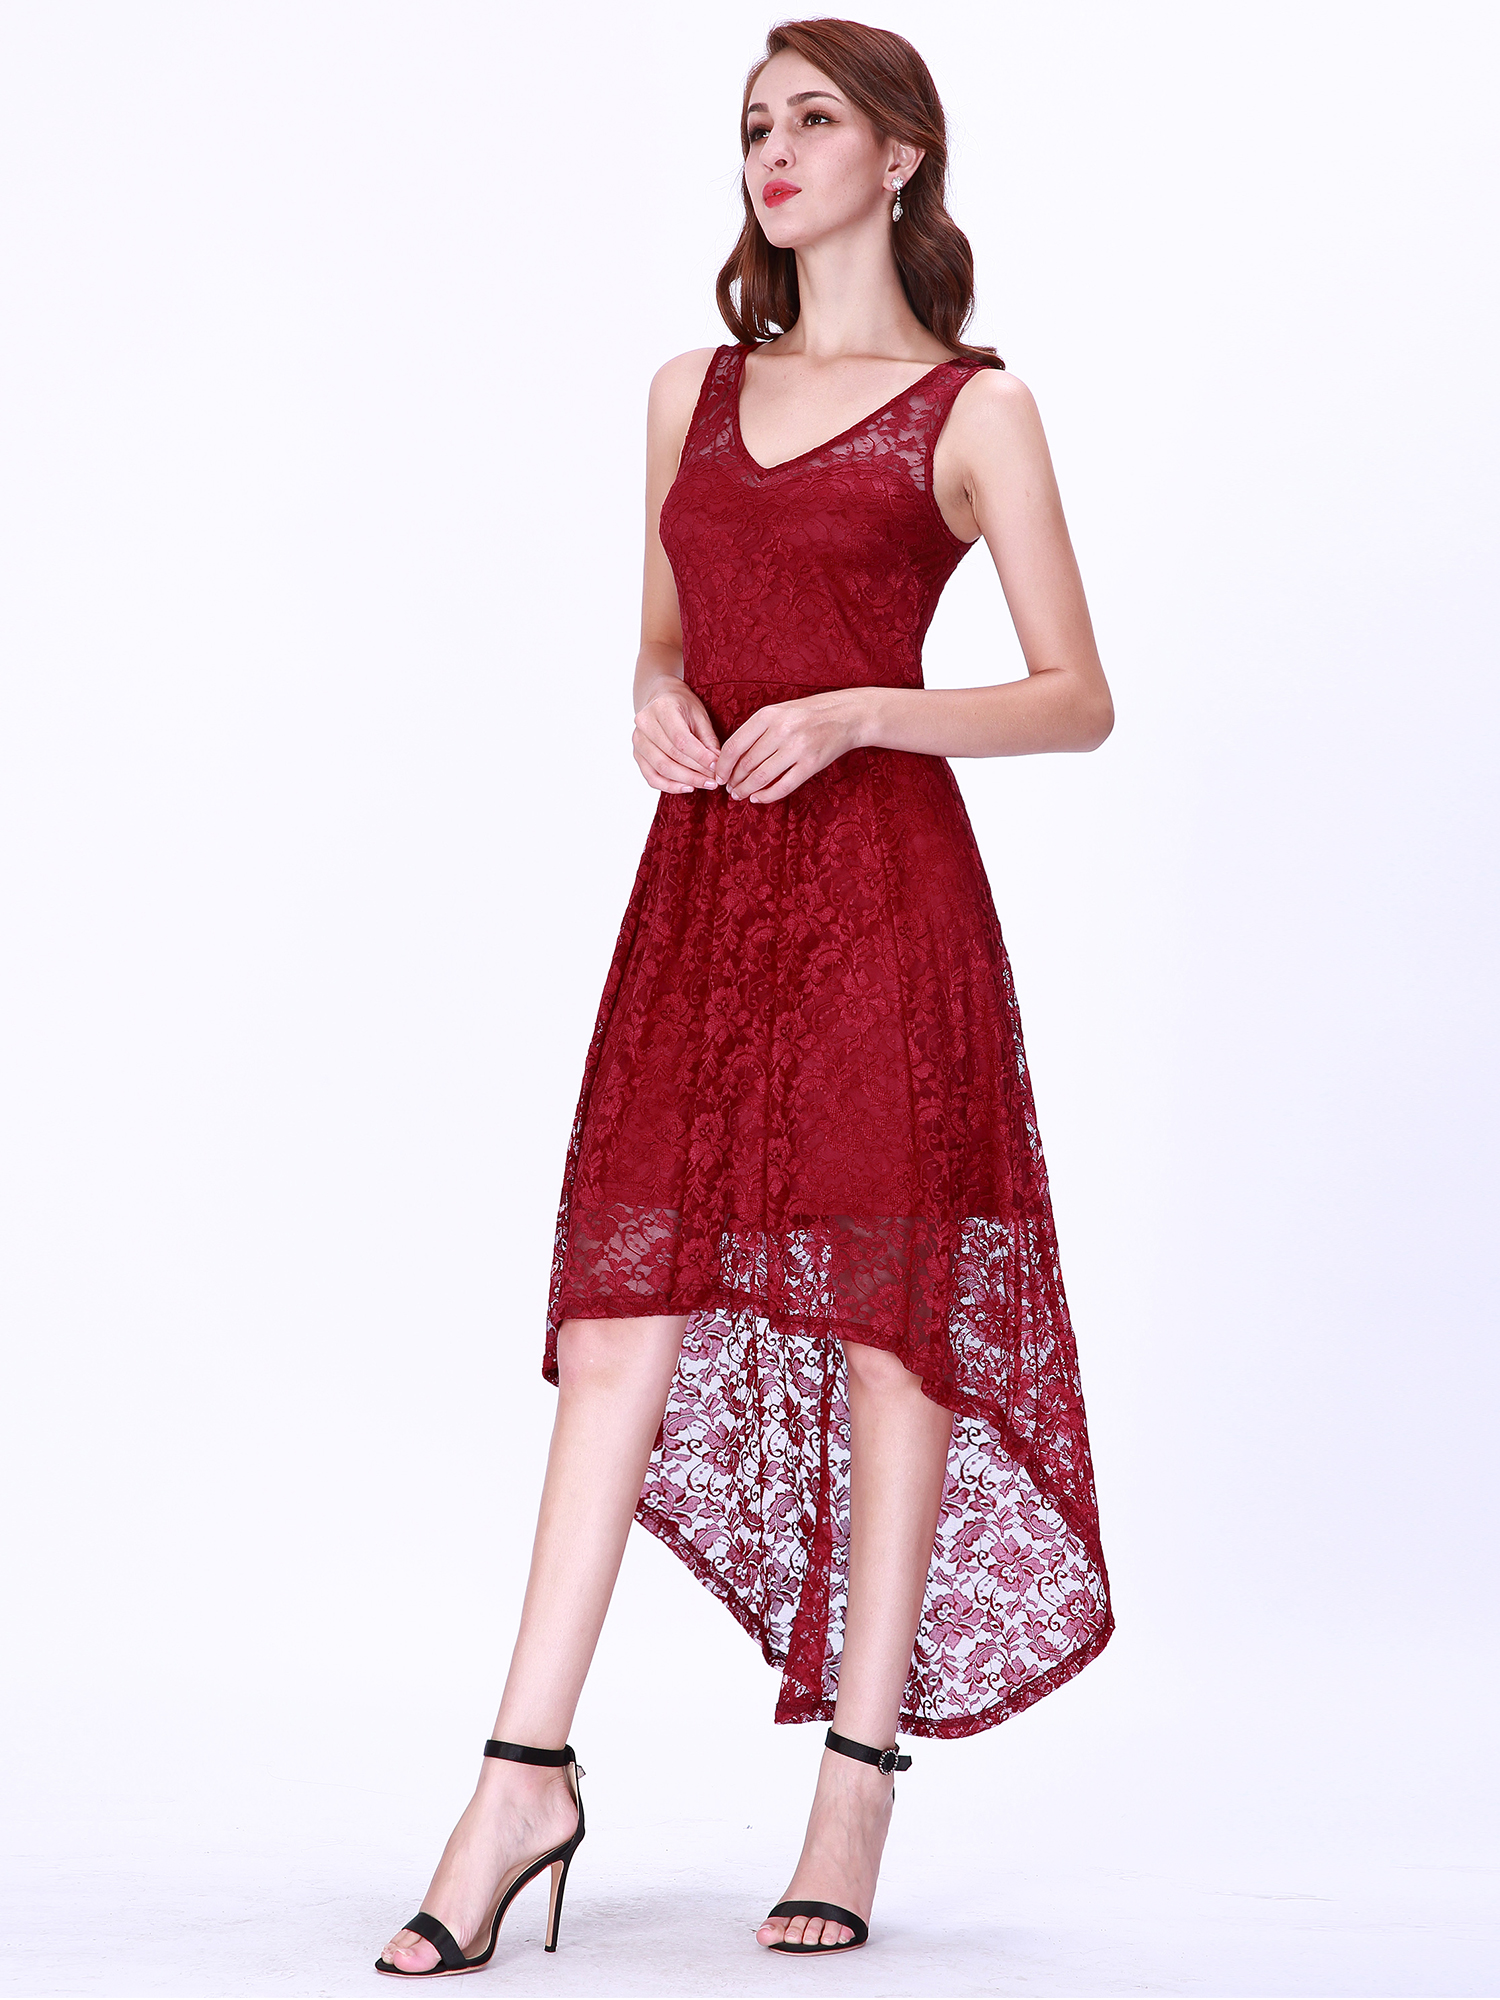 6cb2598725cb Ever-pretty - Ever-Pretty Women s Party Dresses A Line Elegant Lace Evening  Cocktail Casual Summer Dresses for Women 03063 US 12 - Walmart.com